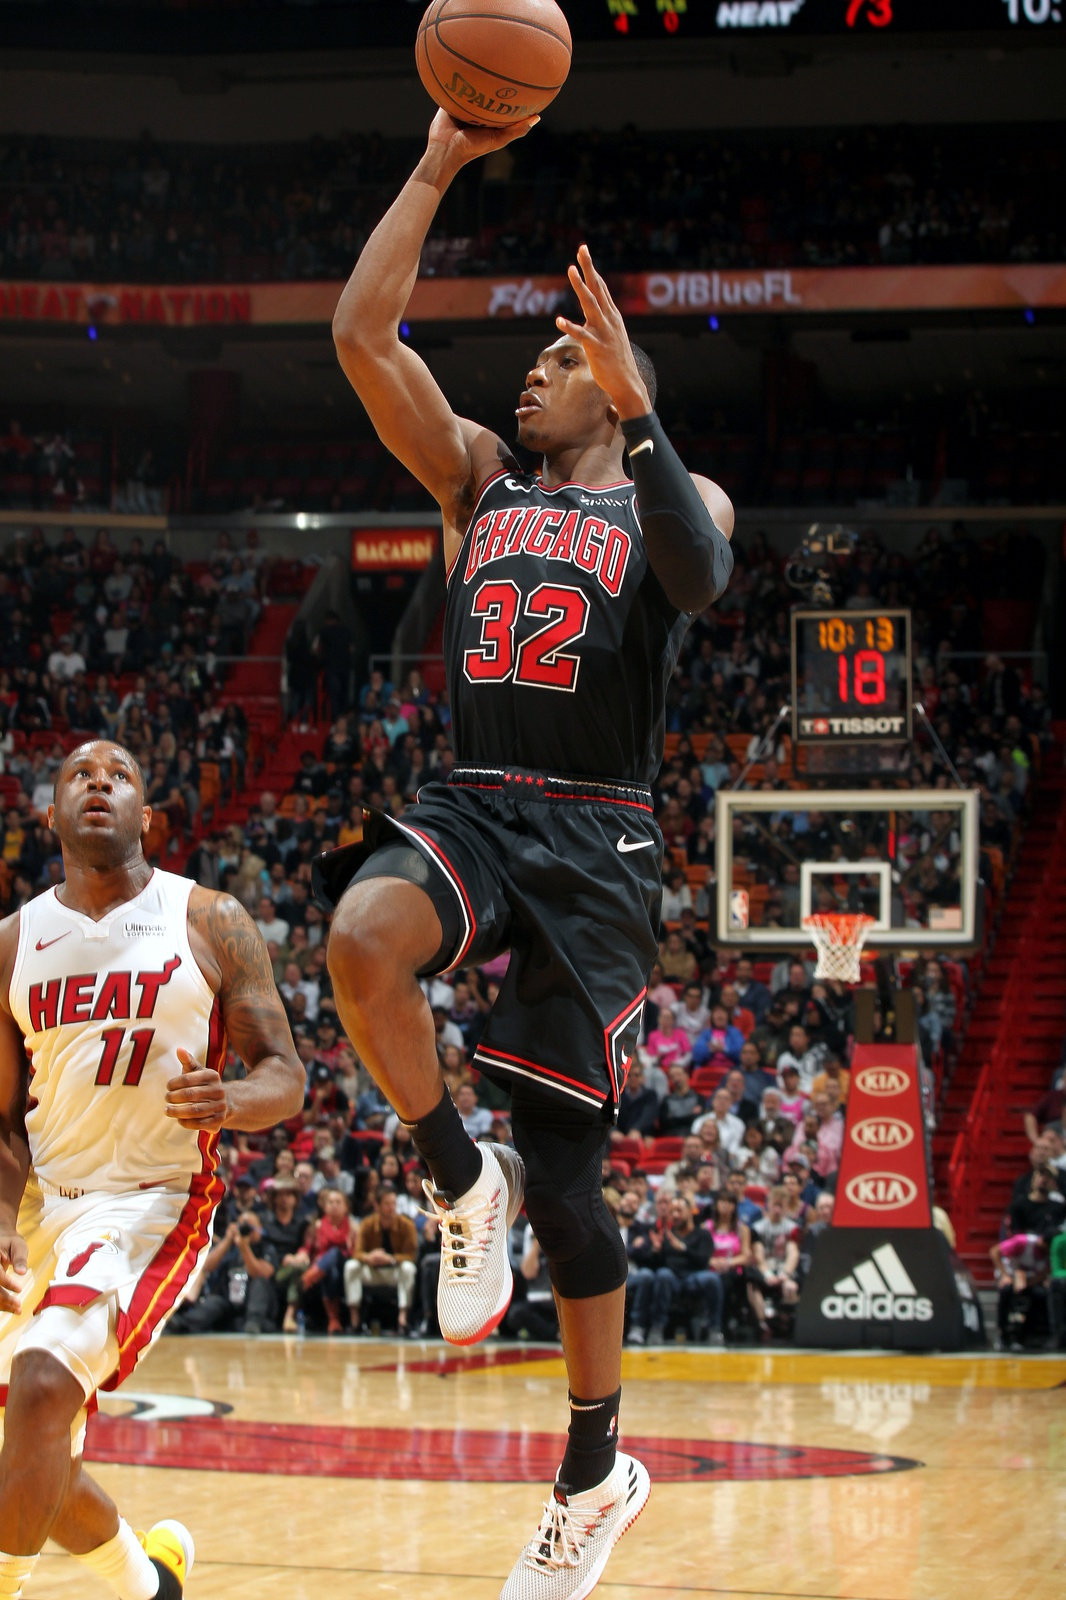 Kris Dunn #32 of the Chicago Bulls shoots the ball against the Miami Heat on January 30, 2019 at American Airlines Arena in Miami, Florida.